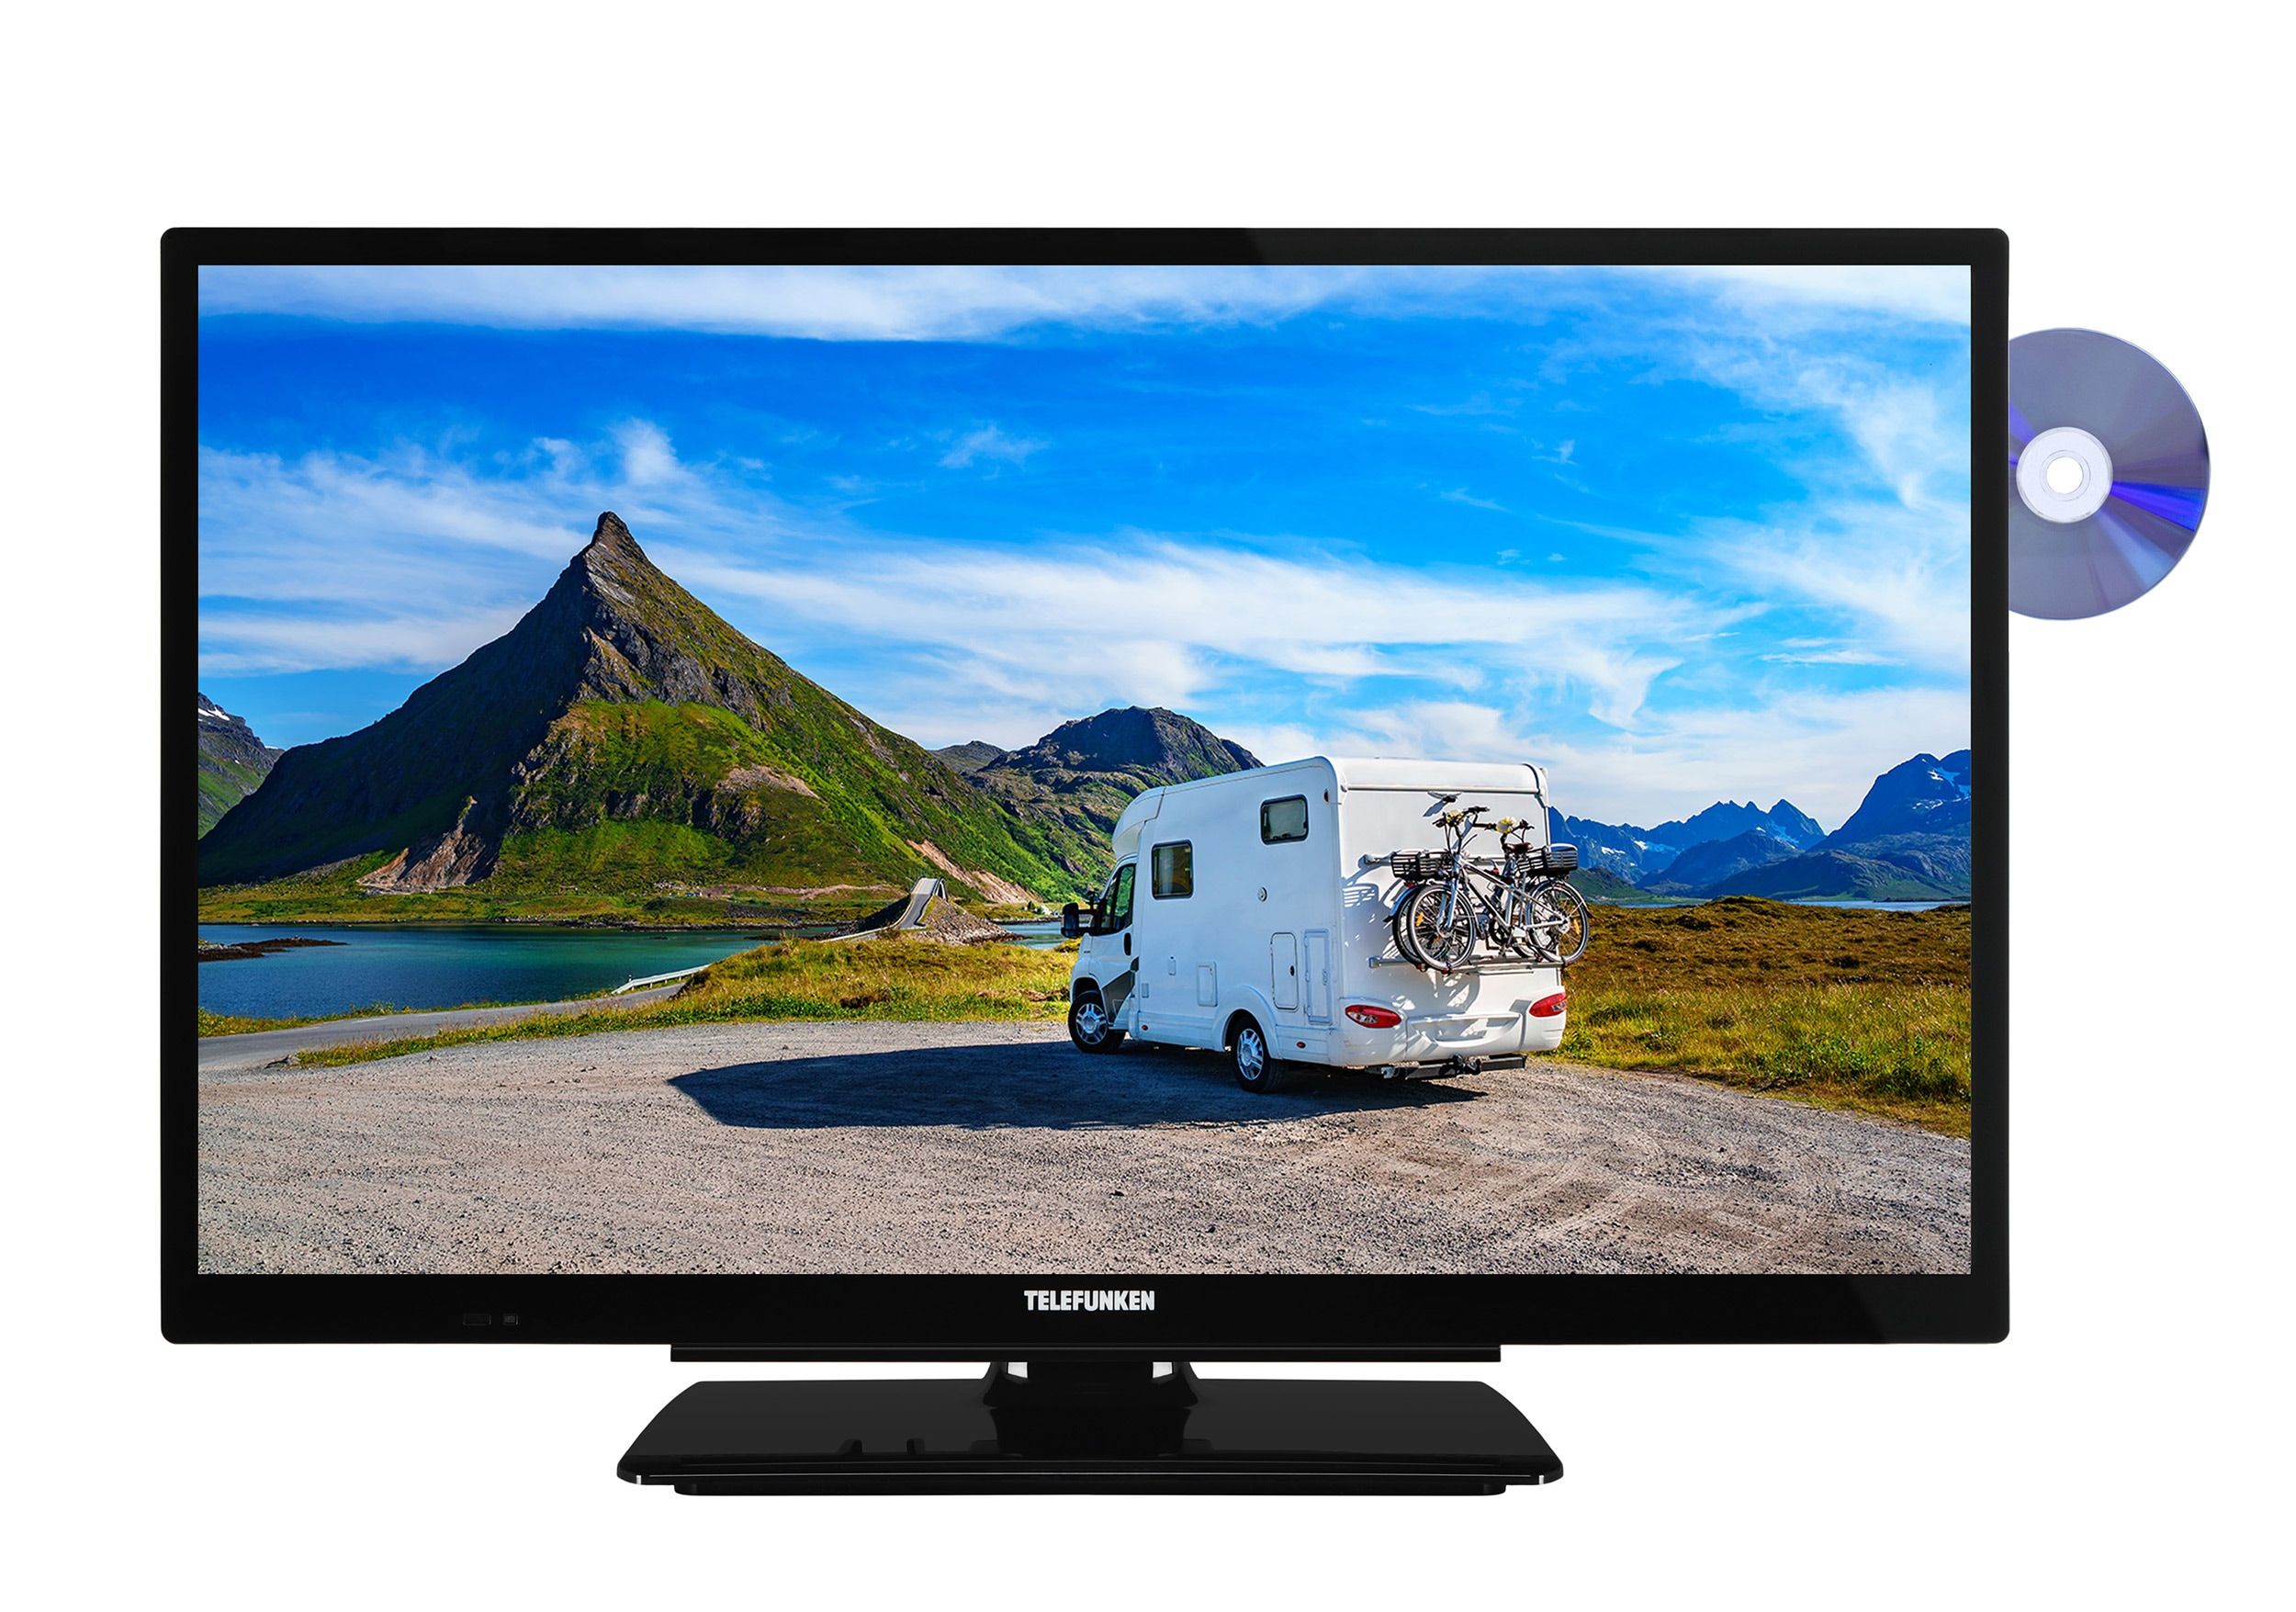 telefunken led fernseher 24 zoll hd ready triple tuner. Black Bedroom Furniture Sets. Home Design Ideas